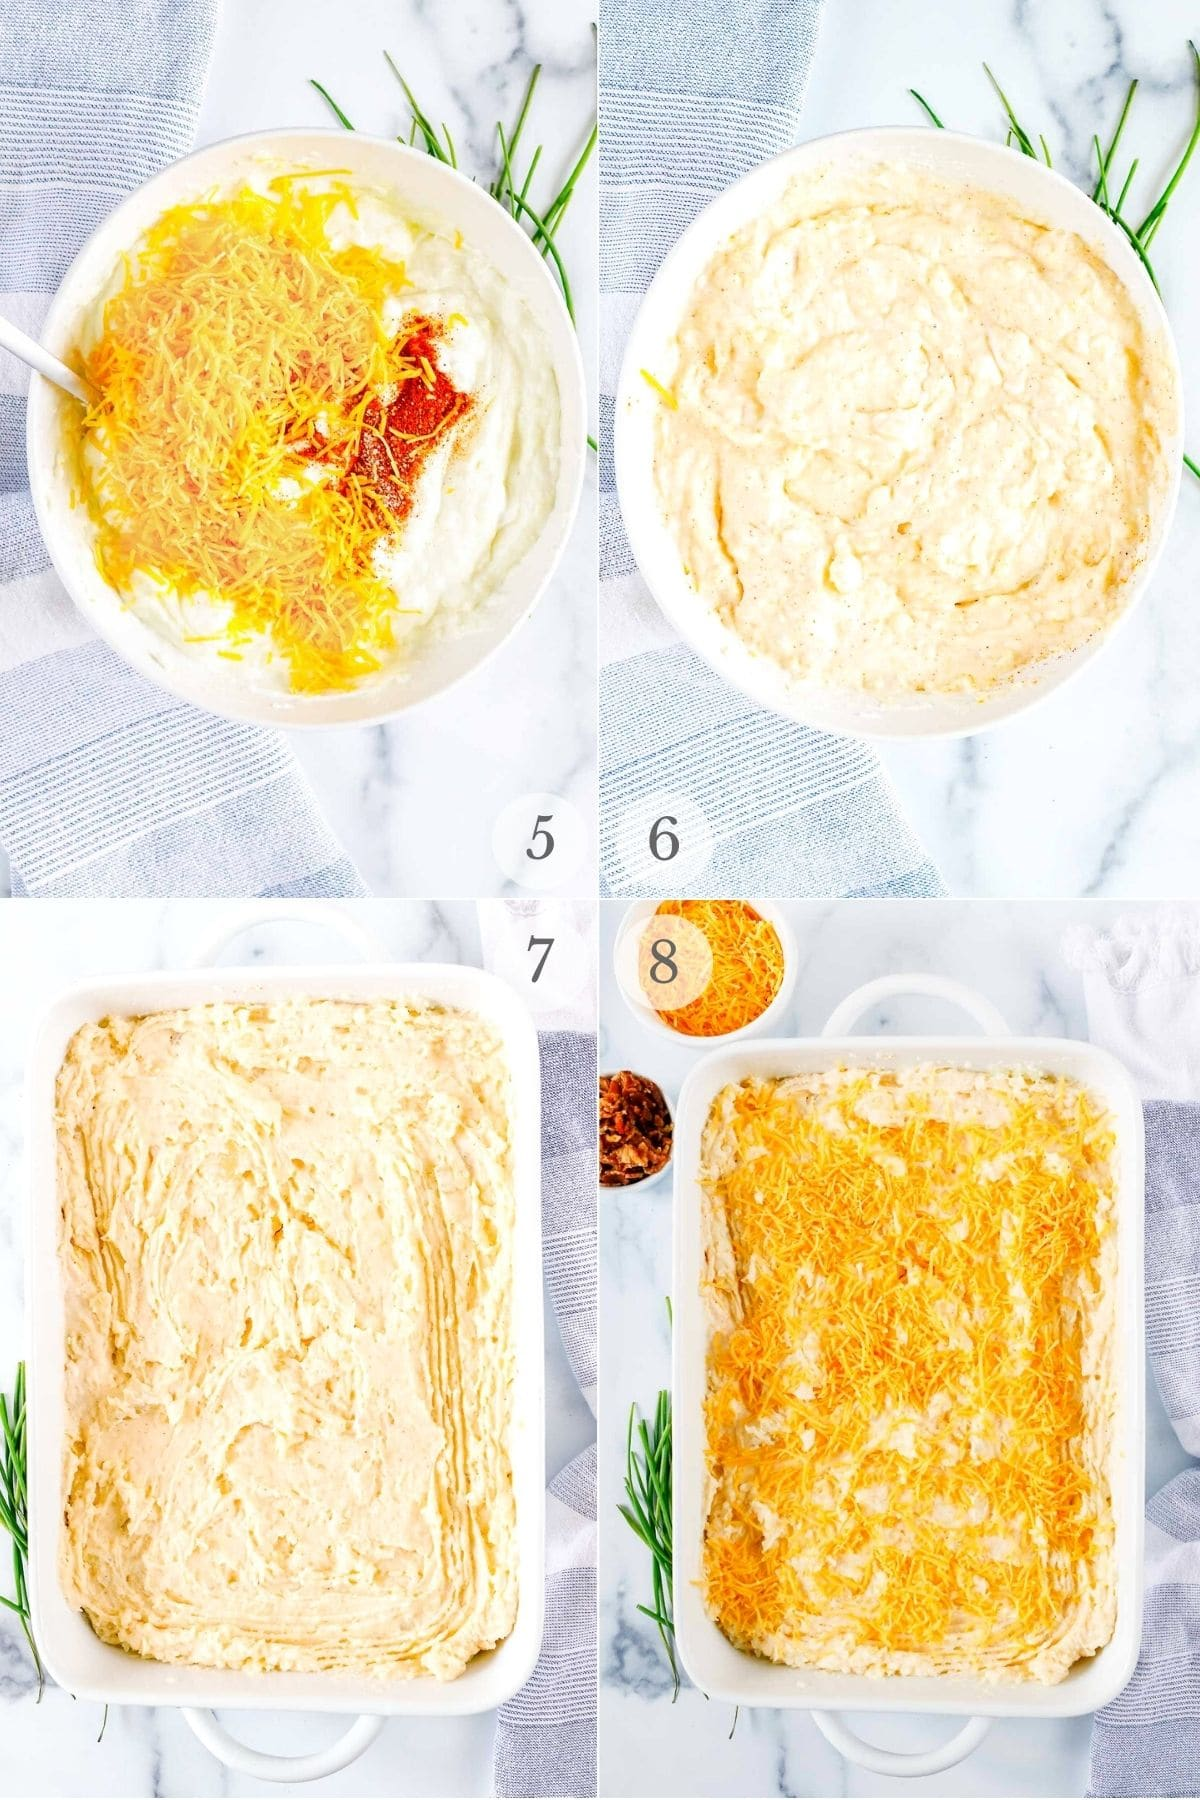 twice baked potato casserole recipe steps 5-8